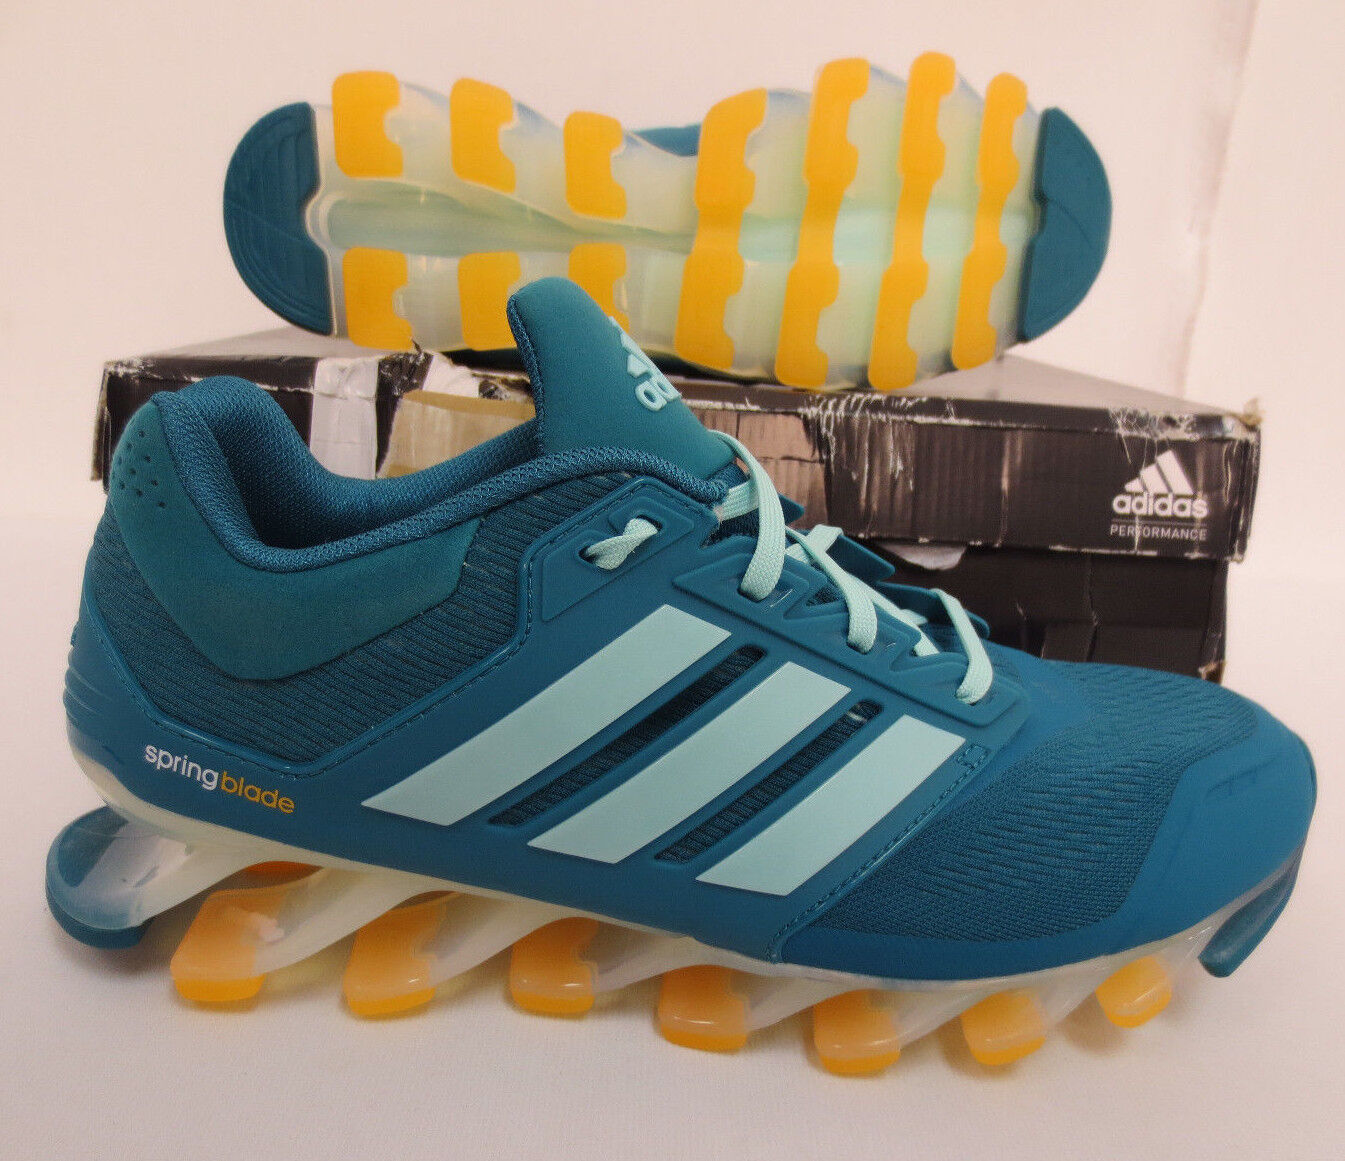 ADIDAS SPRINGBLADE DRIVE WOMENS SHOES SIZE 9.5 RUNNING GYM WALKING NEW C75668